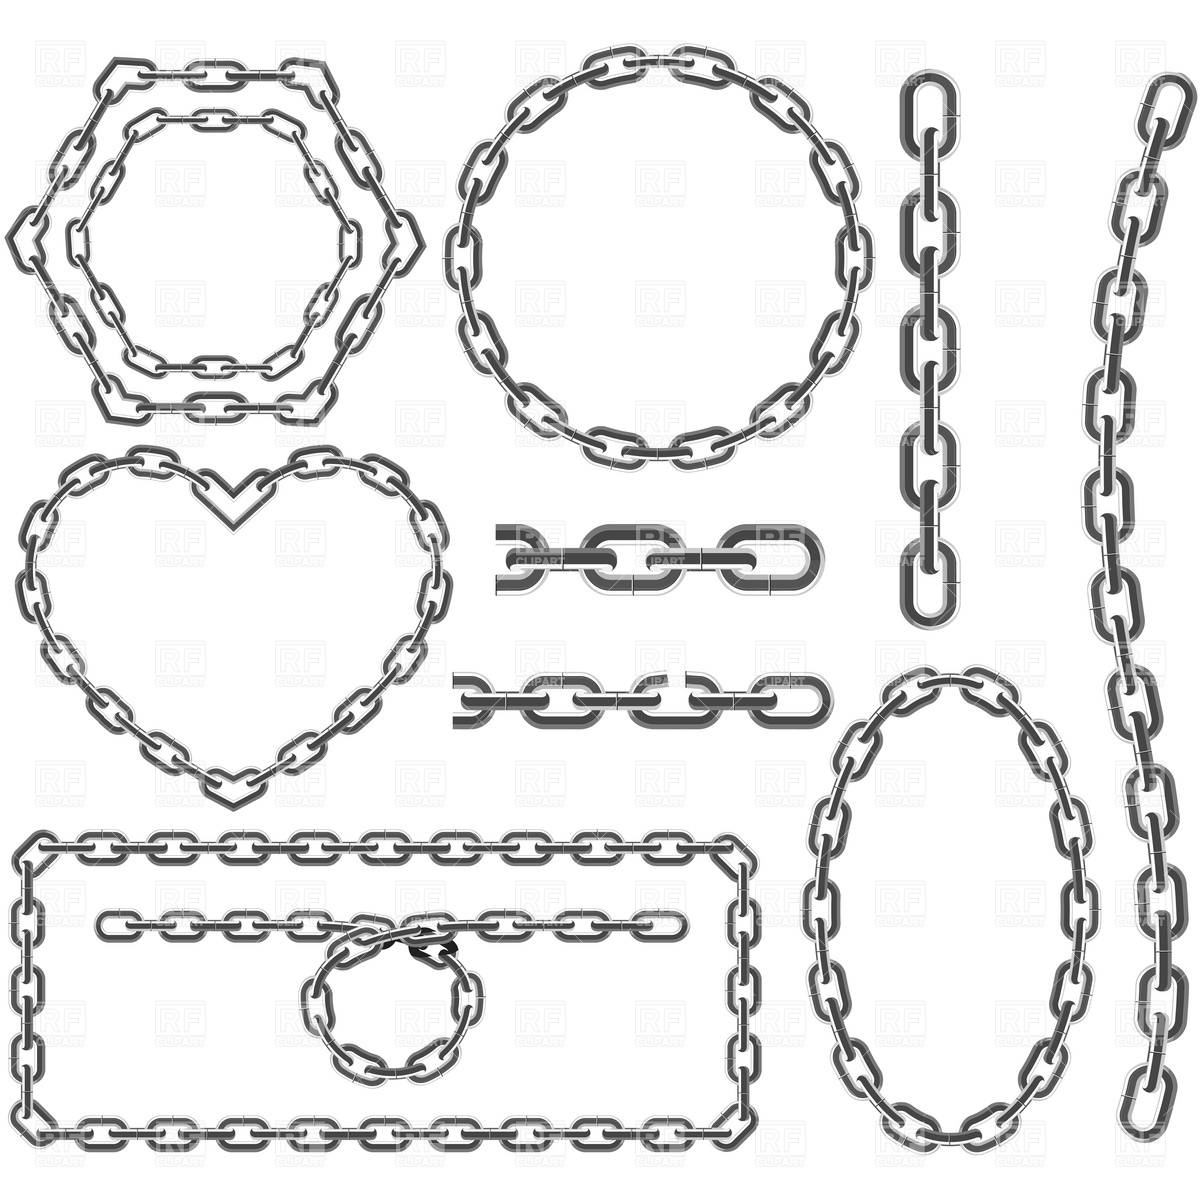 Chain Circle Clipart Images   Pictures   Becuo